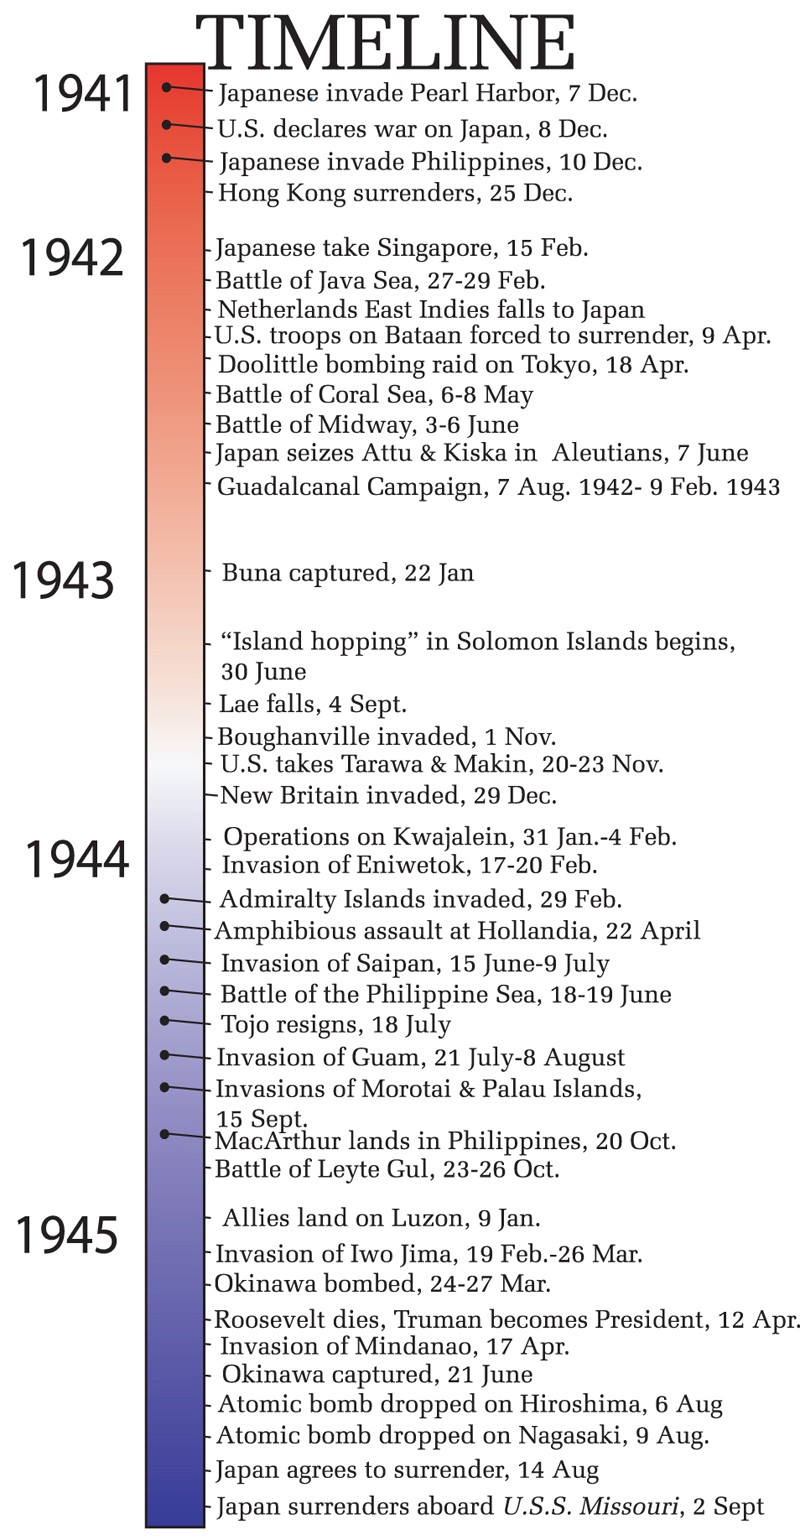 Timeline of World War II - Asia / Pacific